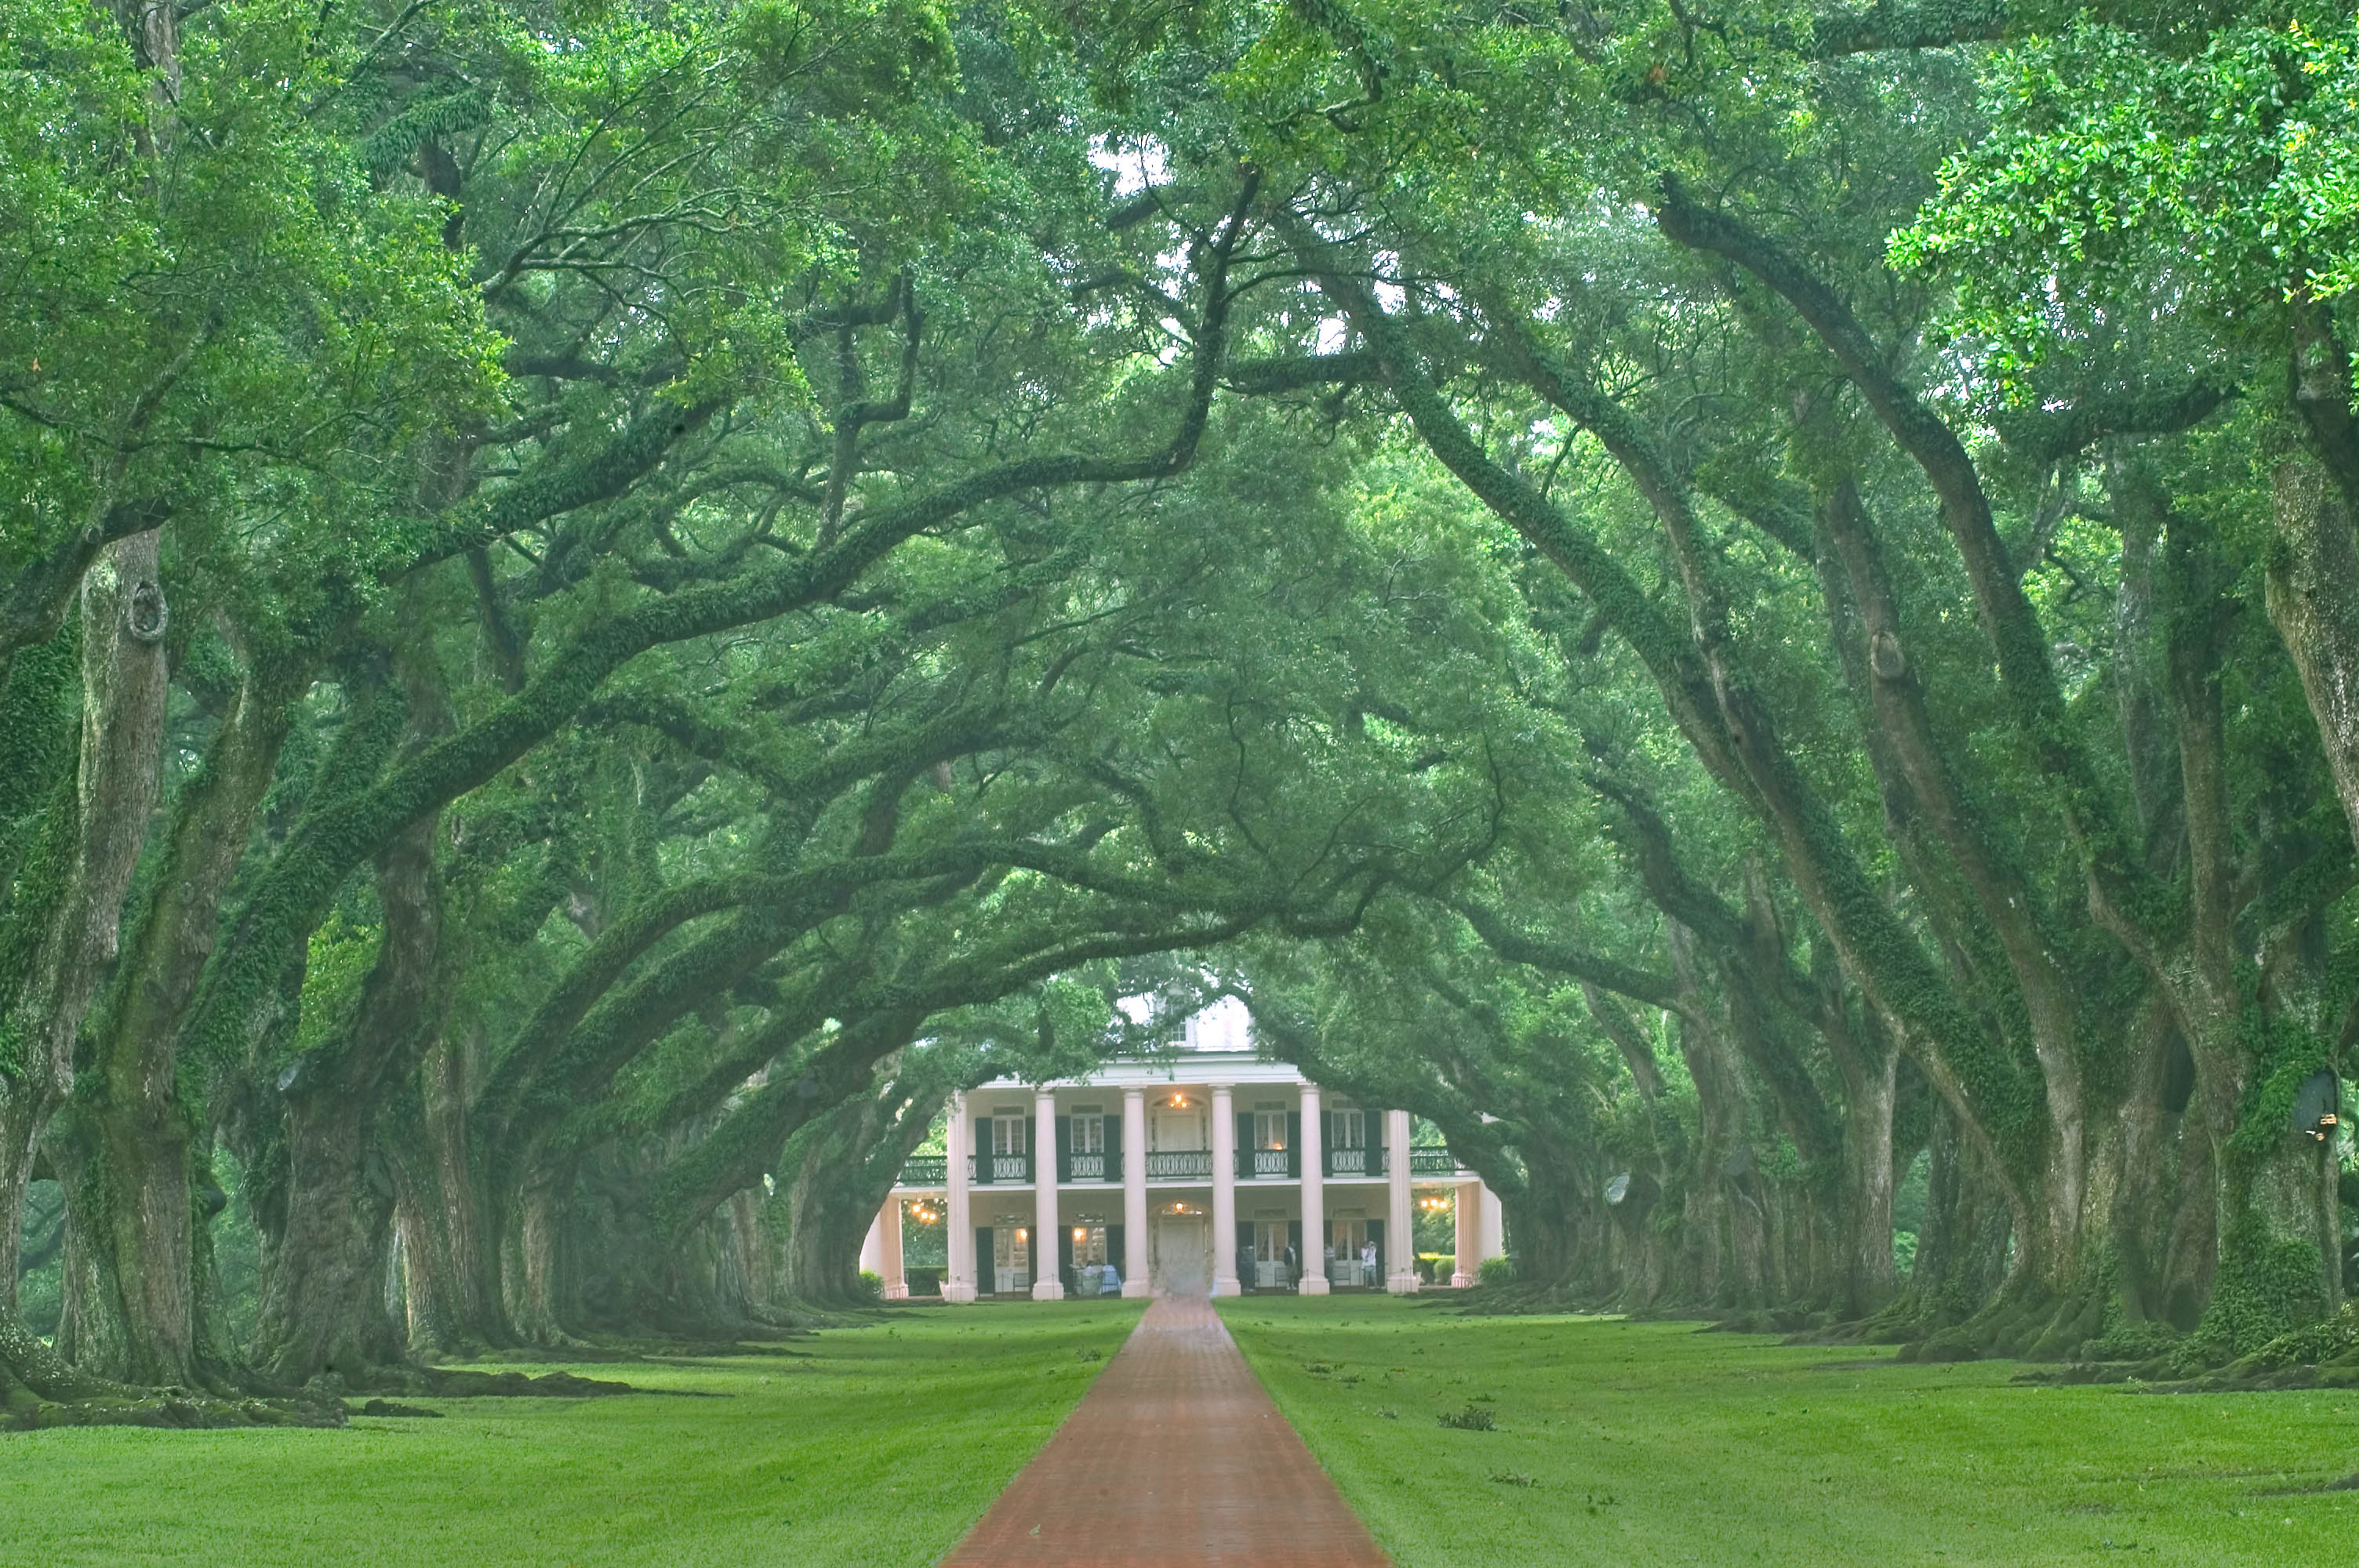 Photo 453-24: The alley of Oak Alley Plantation, view from ...